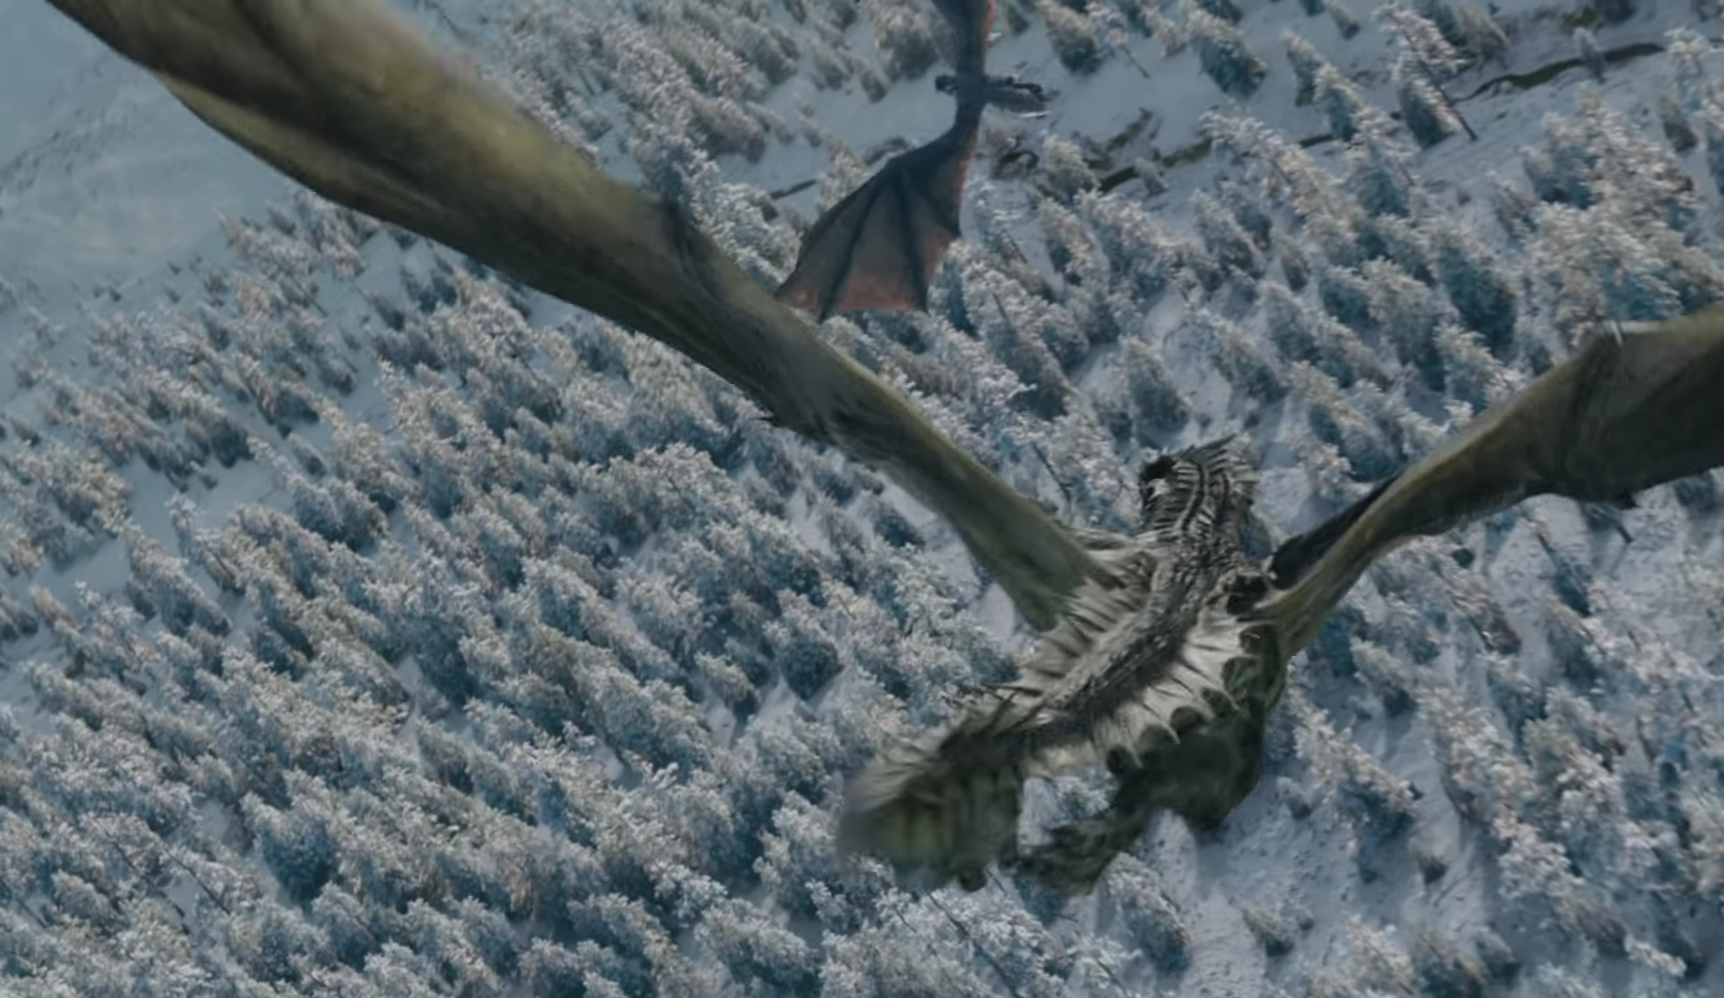 Image Credit: HBO/Game Of Thrones (Youtube/GameofThrones)